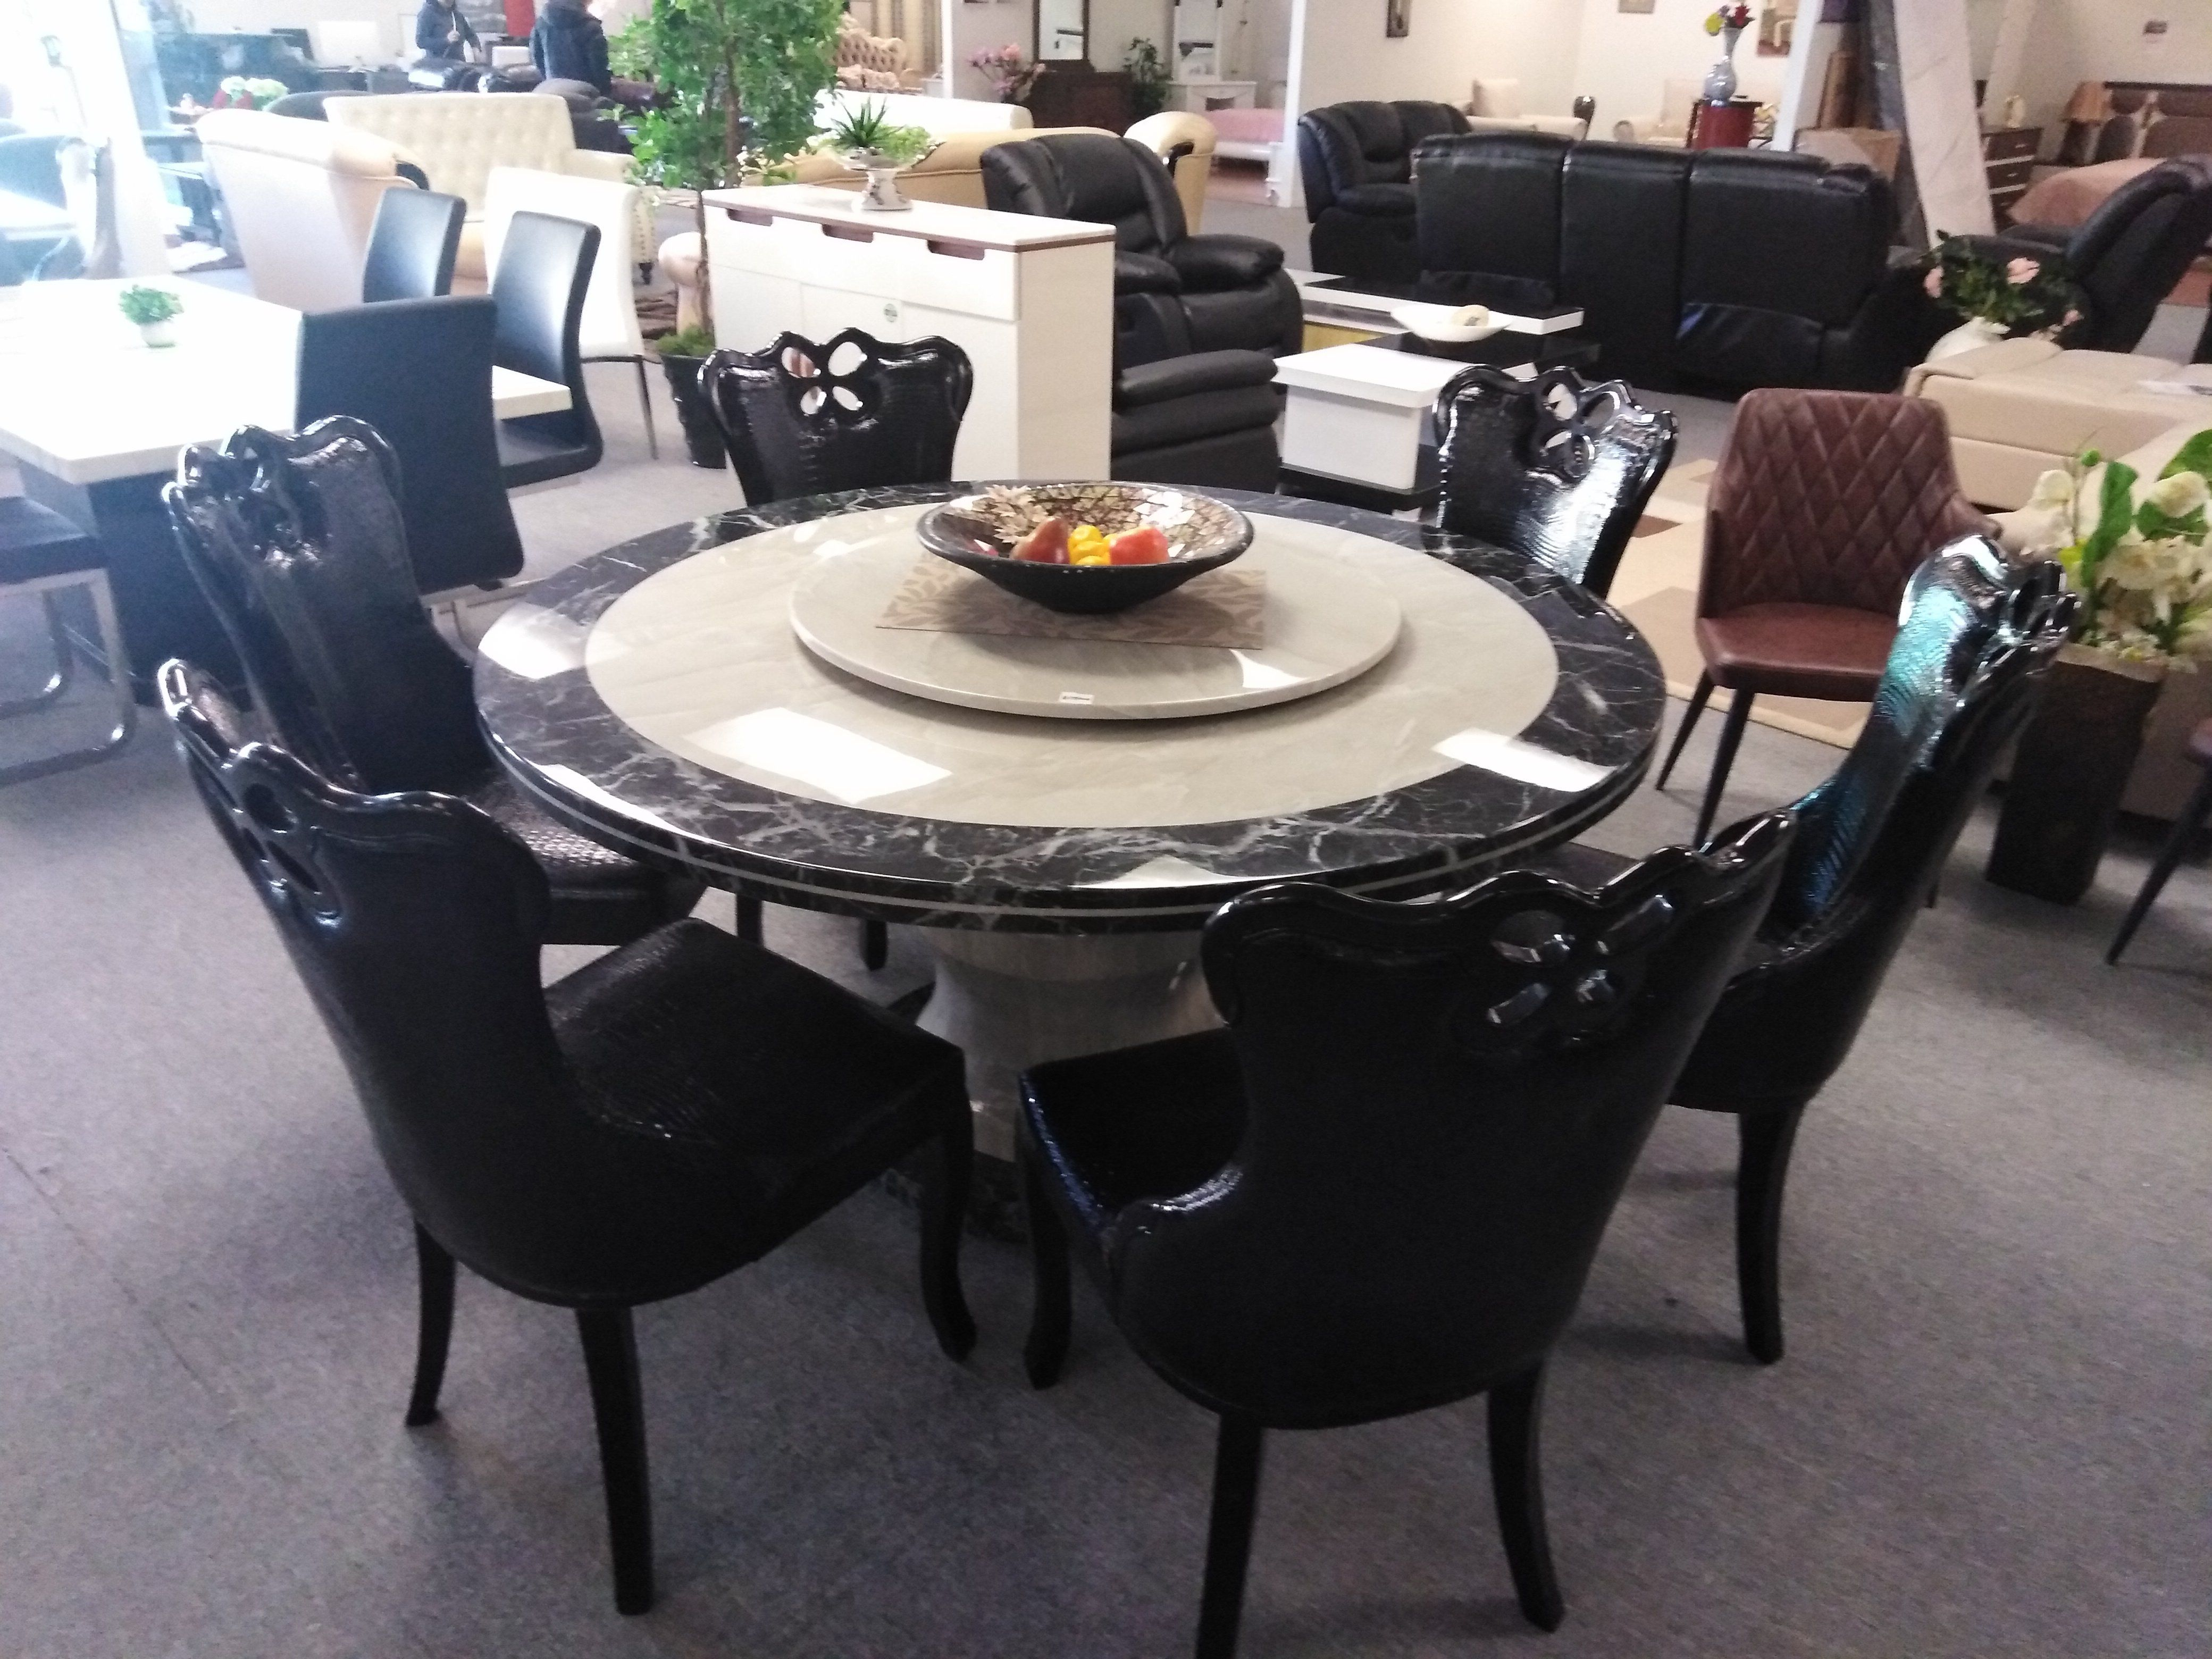 Magnificent 1 5M Marble Stone Dining Round Table With 6 Designed Chairs Andrewgaddart Wooden Chair Designs For Living Room Andrewgaddartcom